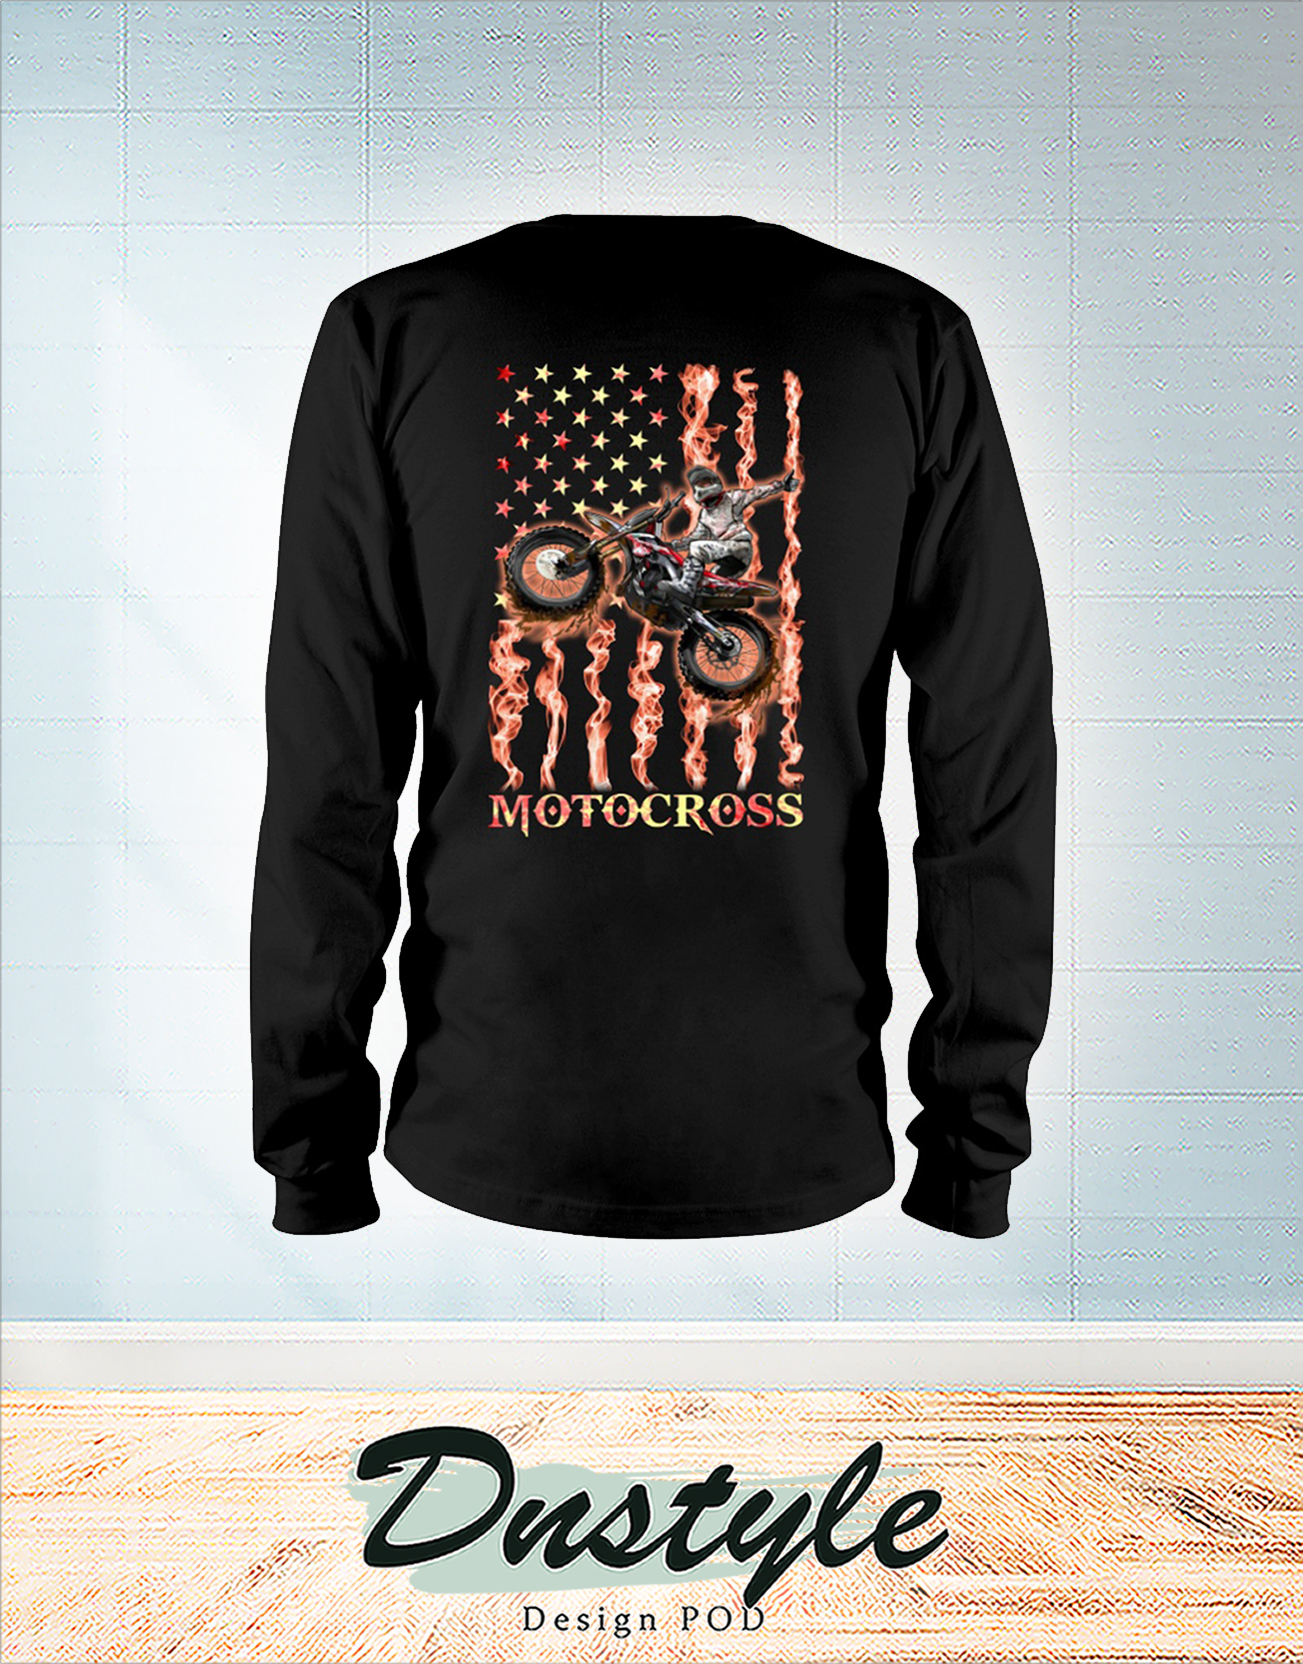 Motocross fire american flag 4th of july long sleeve